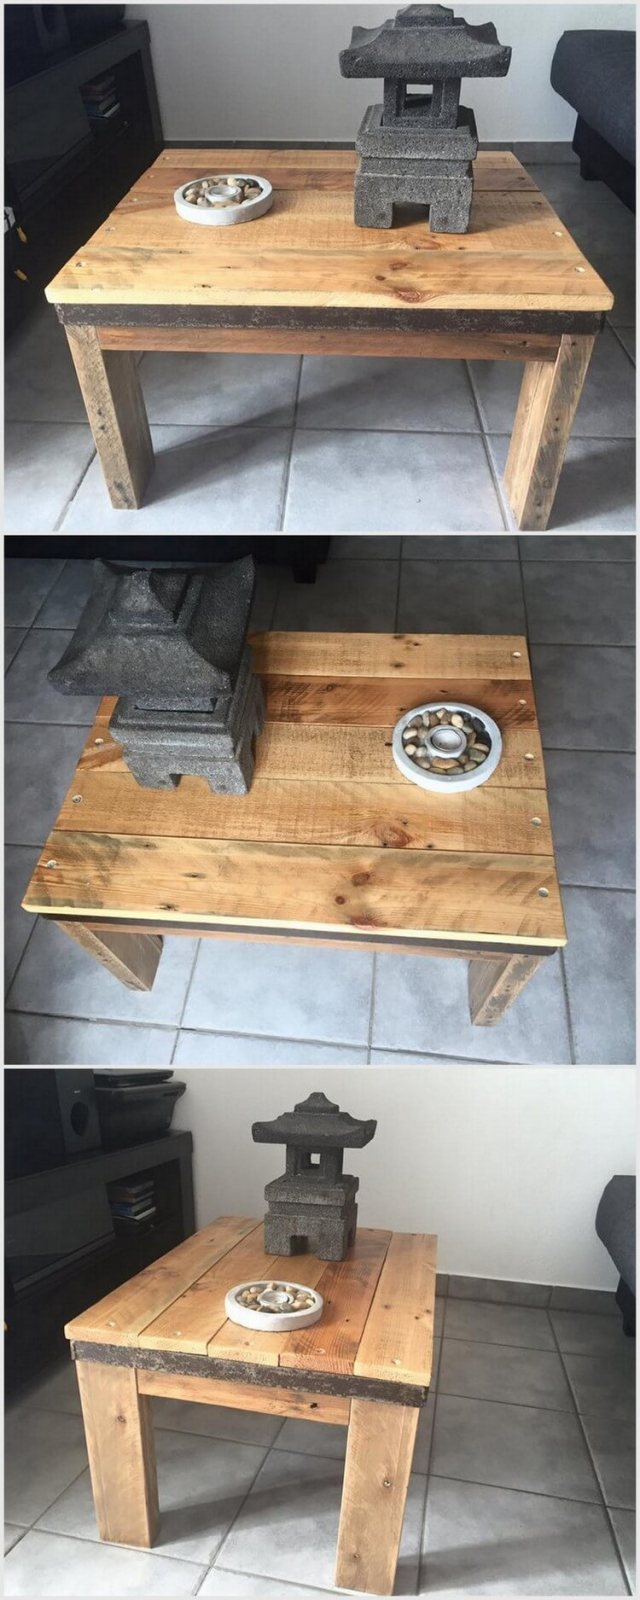 Shipping Wood Pallet Table